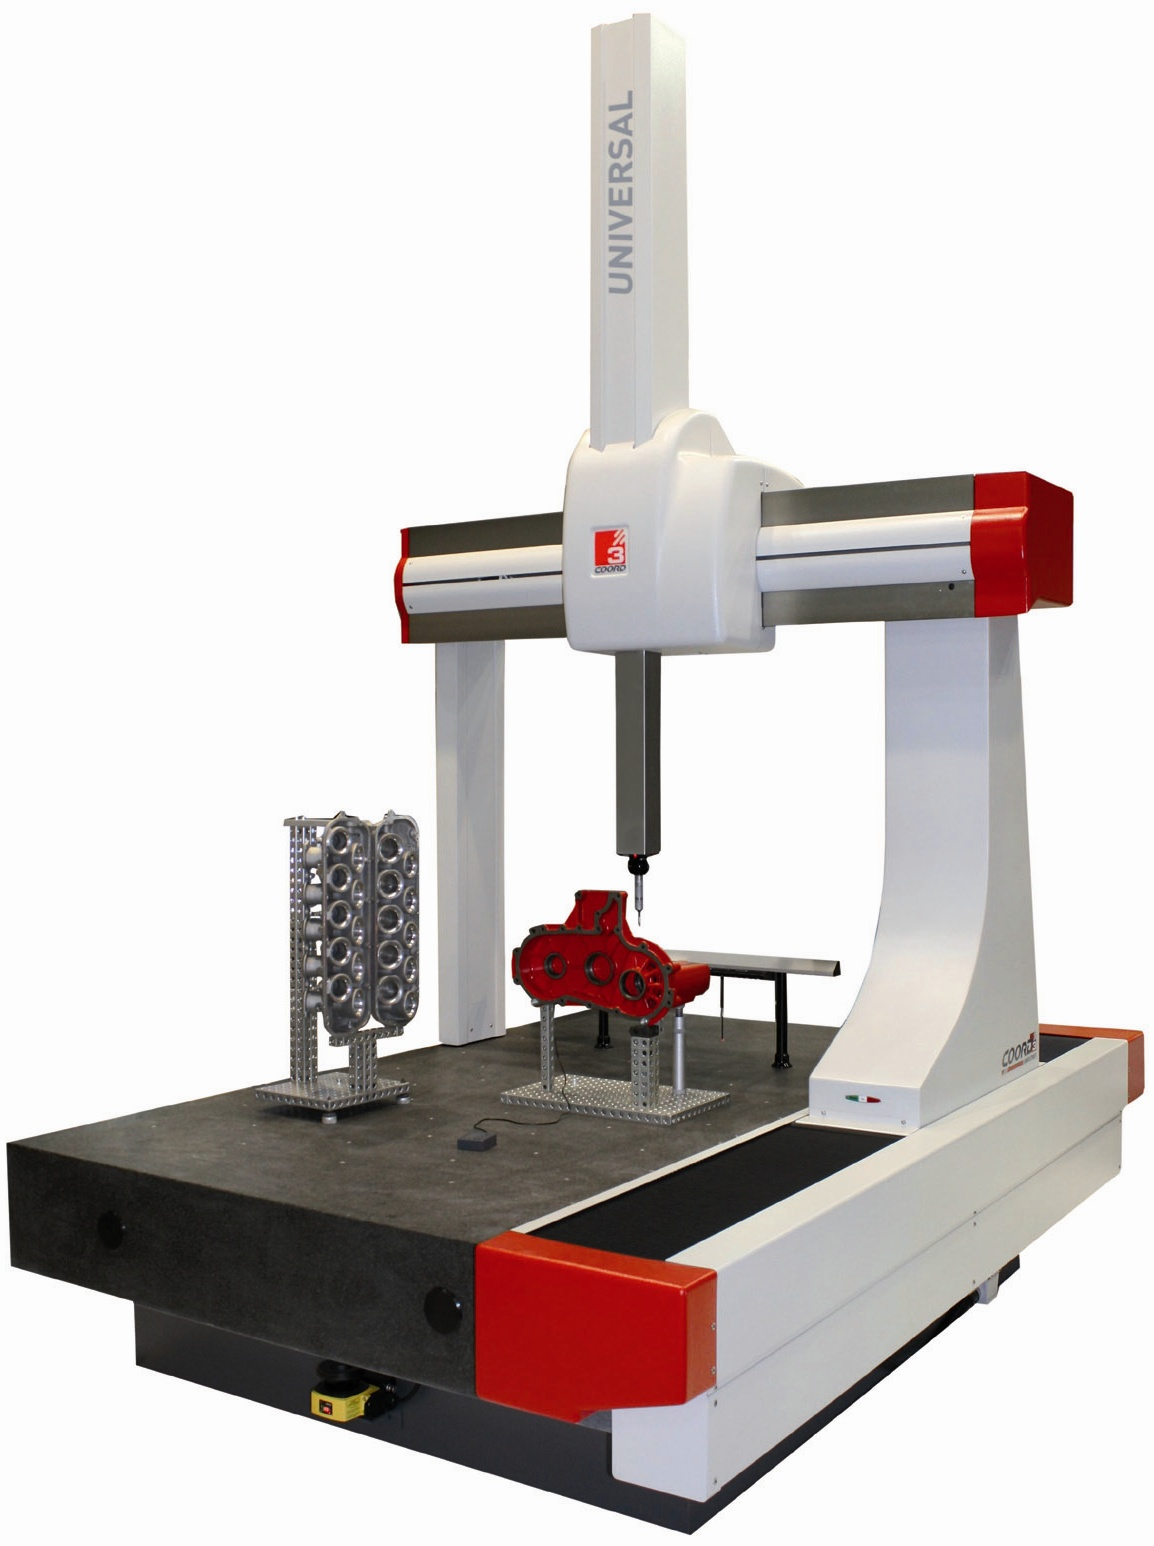 coordinate measuring machine software